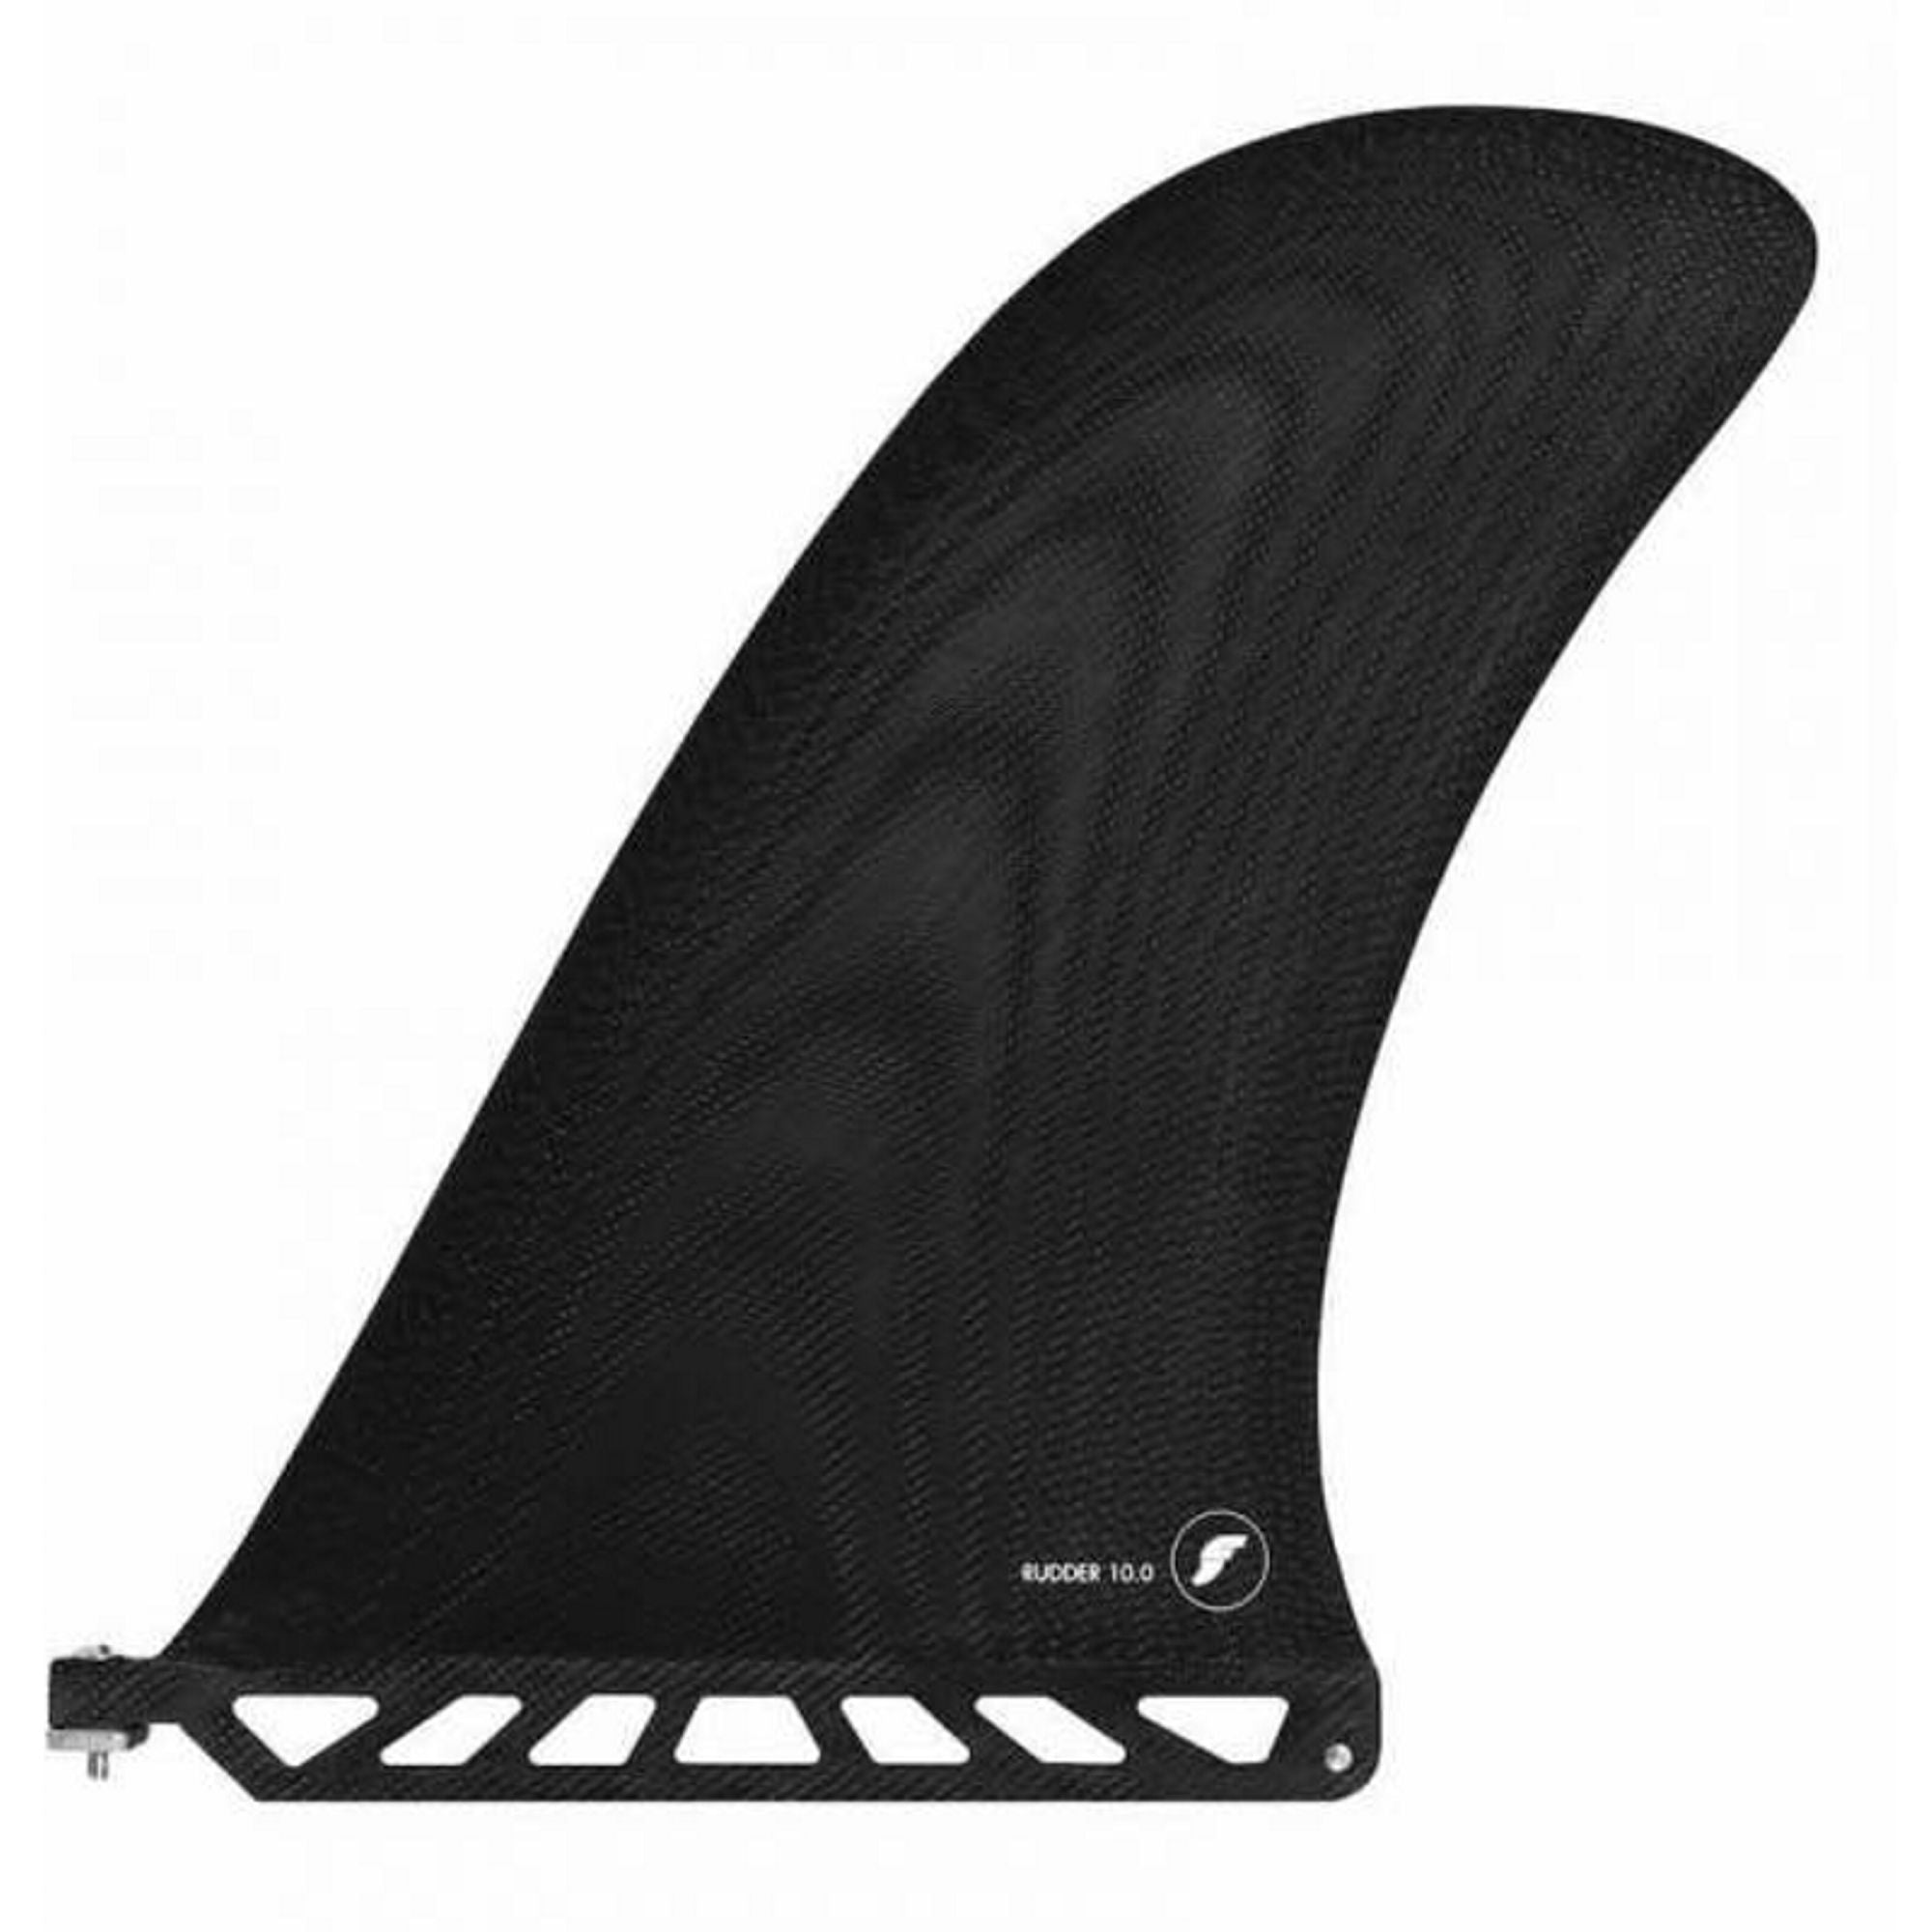 "Futures Rudder 10.0"" Fiberglass Black Fin"